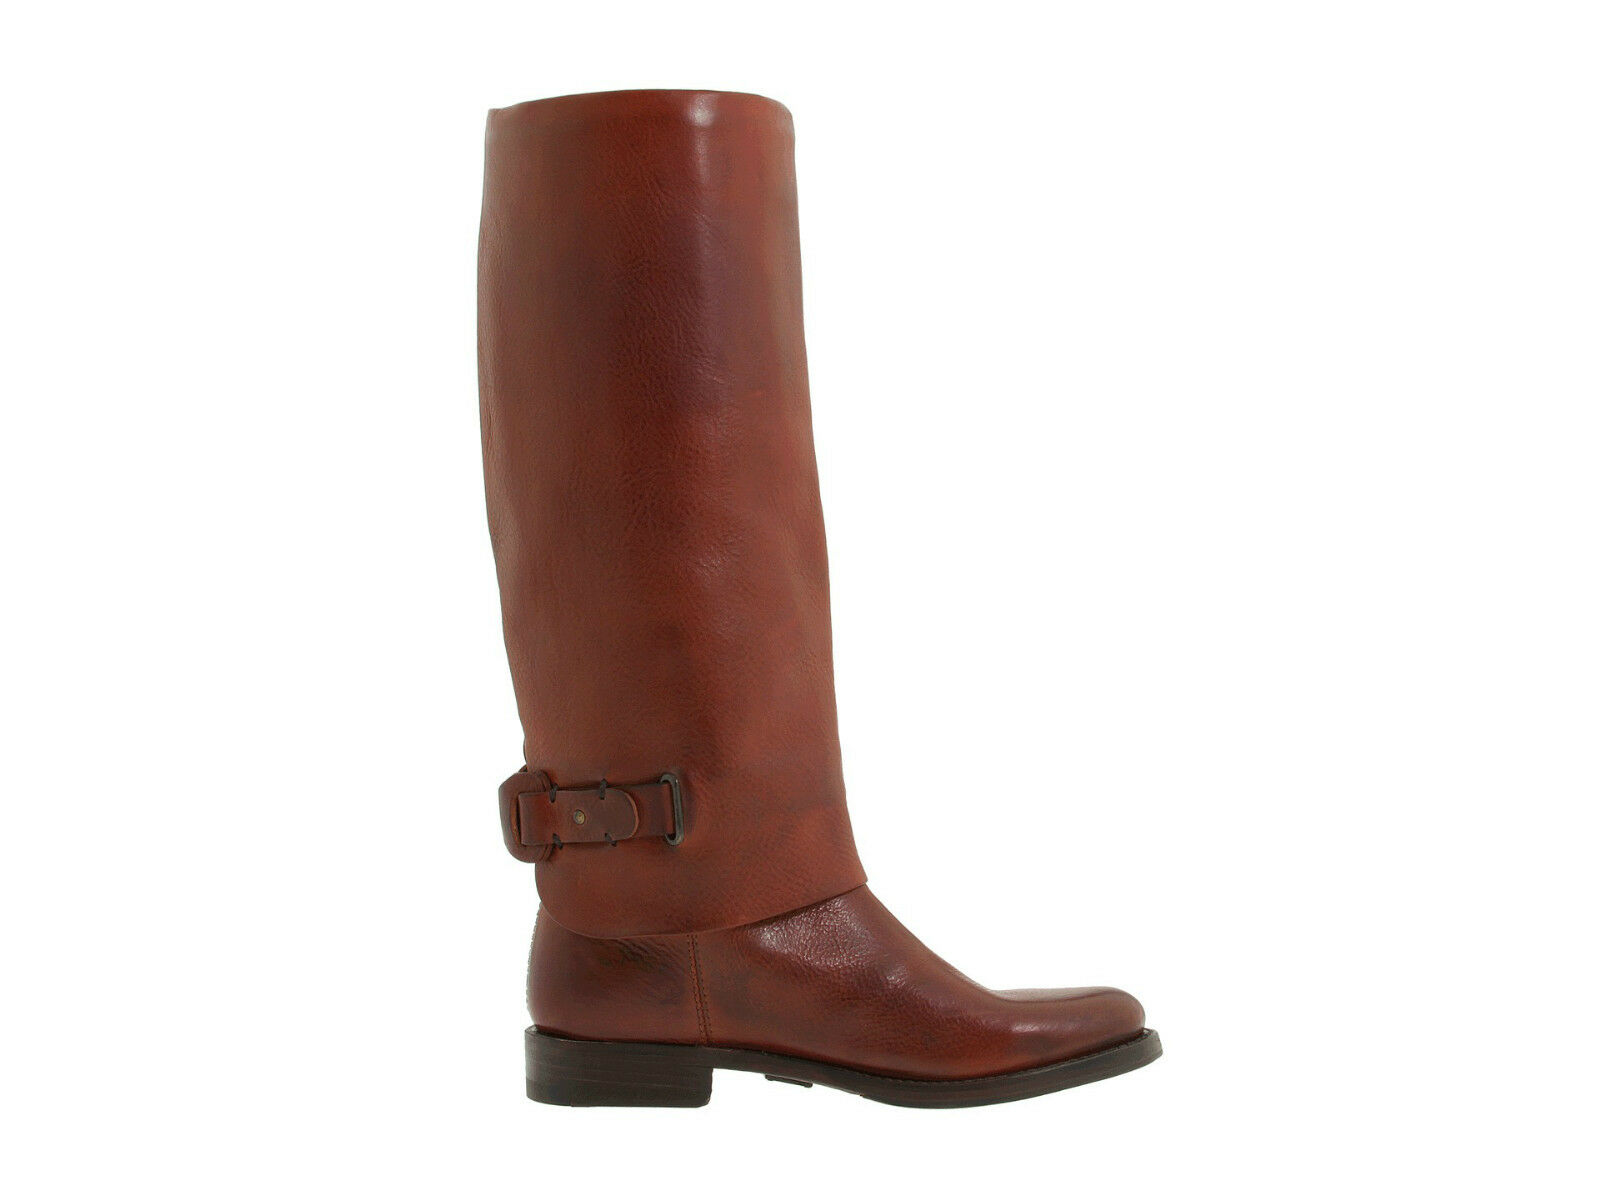 468 Frye Maxine Loop Rust Red Brown Leather Equestrian Pull On Riding Boots 5.5 3555bd